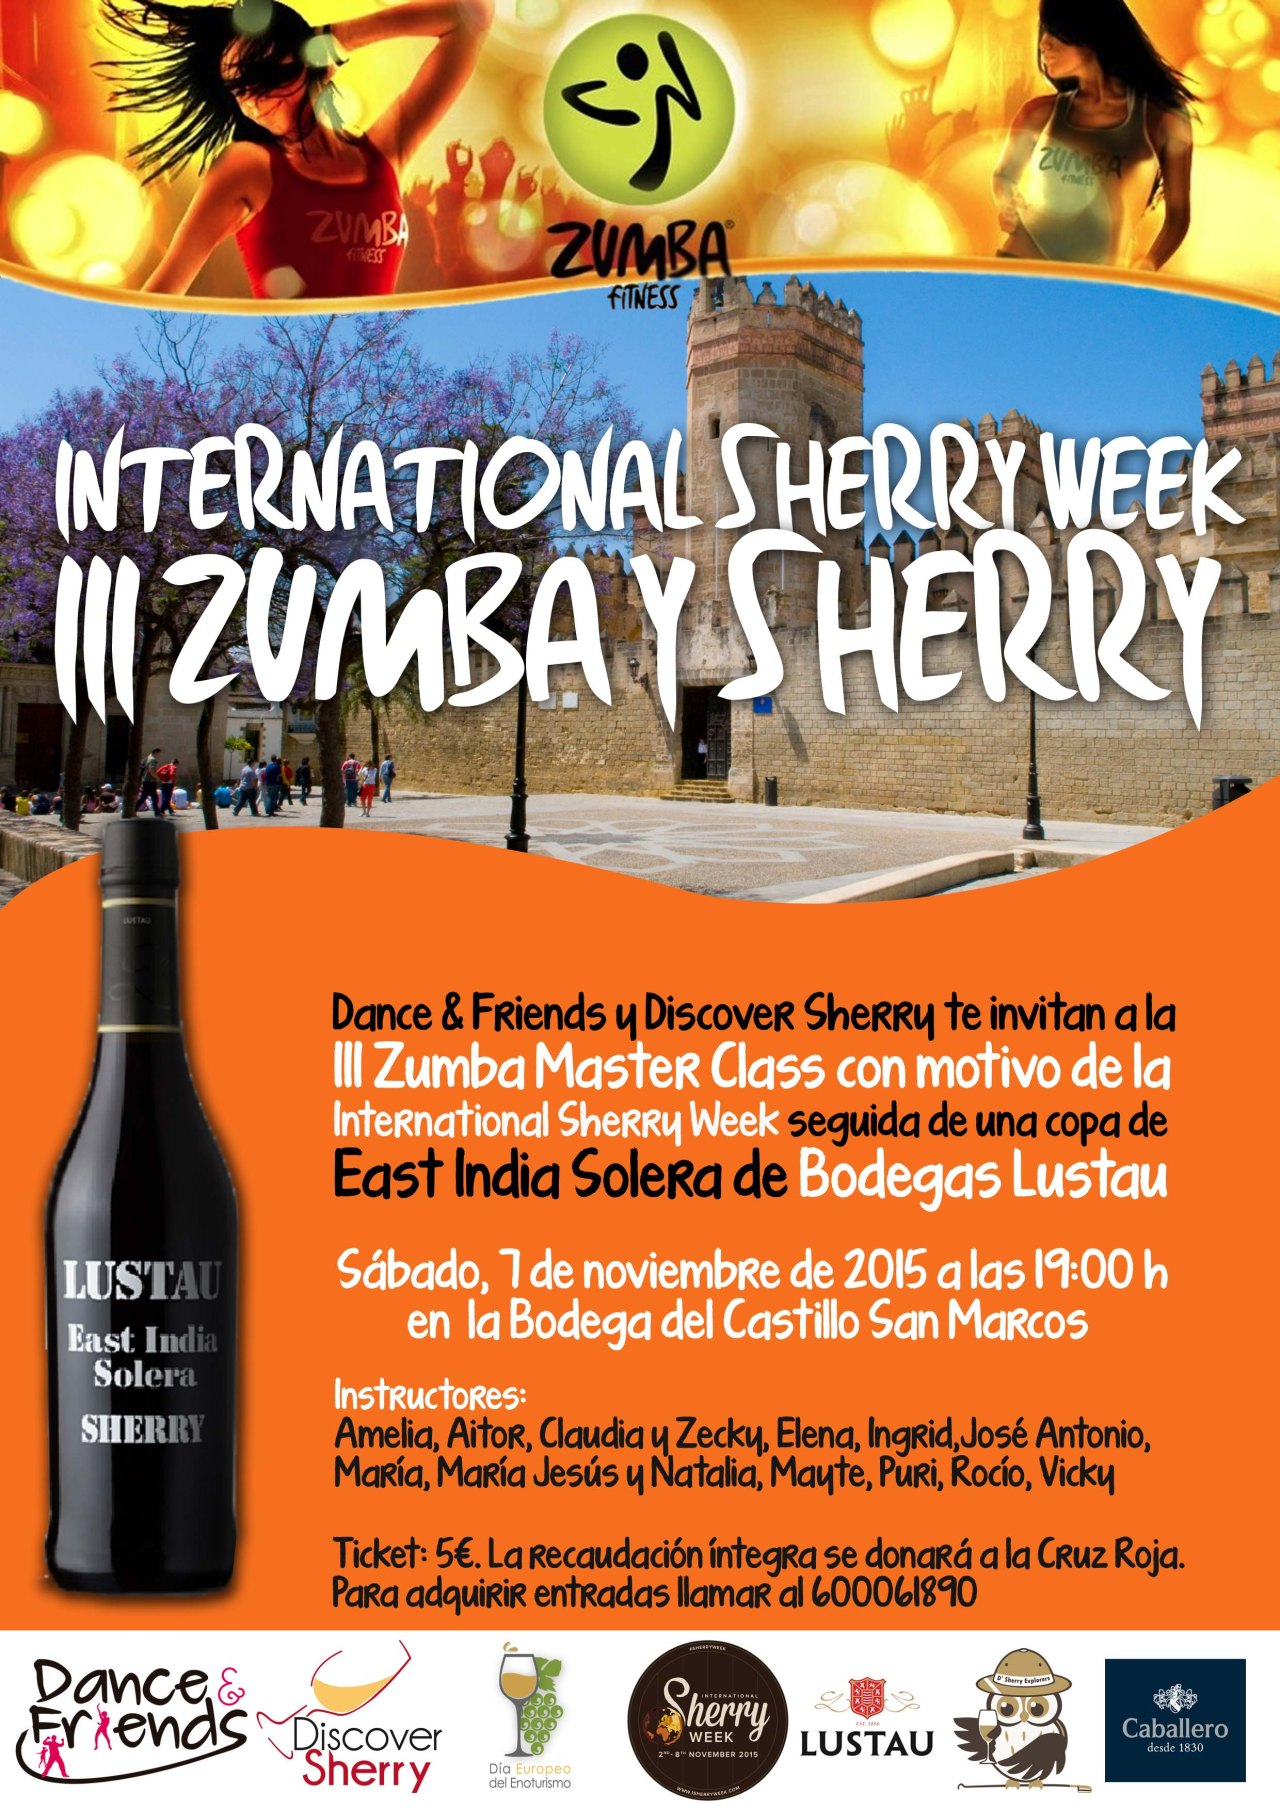 zumbaysherry2015instructores